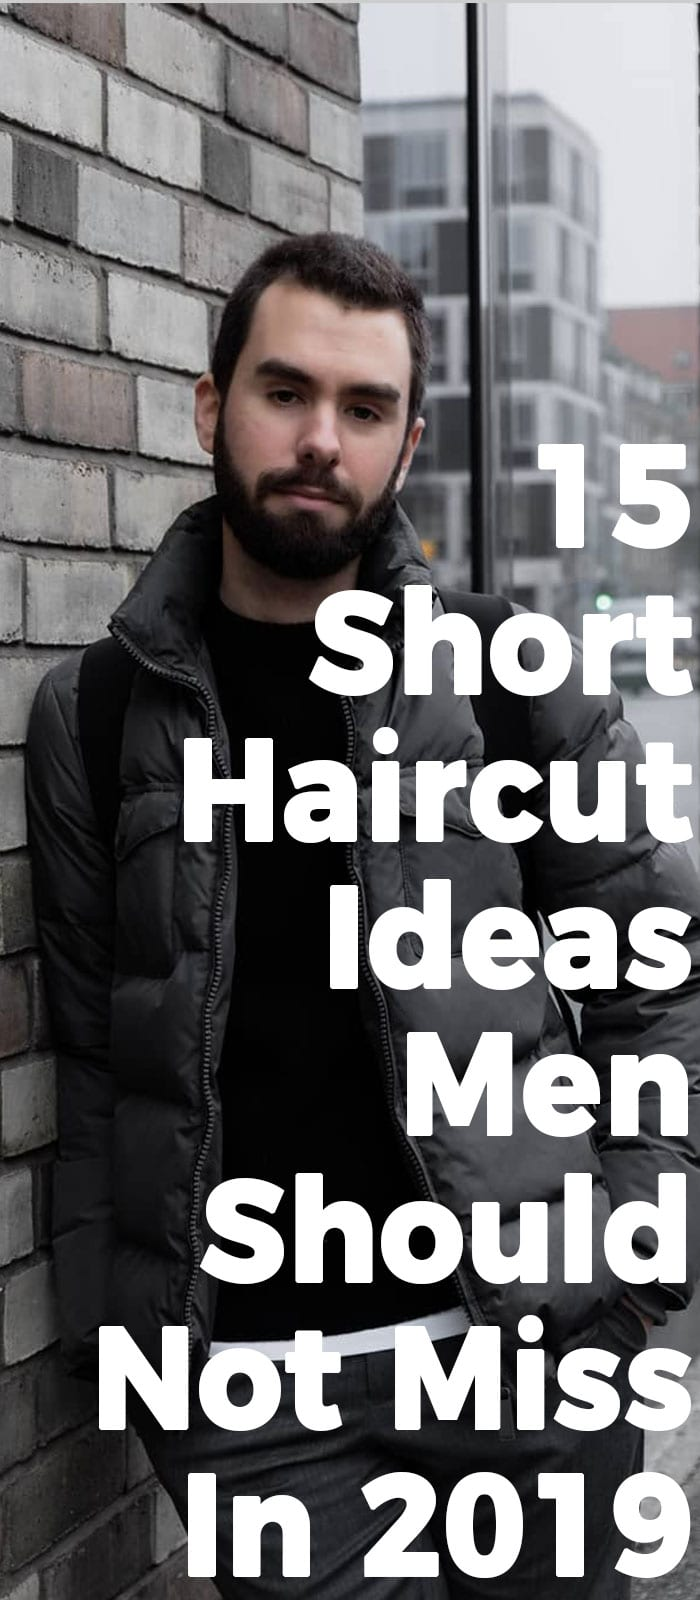 15 Short Haircut For Men To Look Better In 2019!